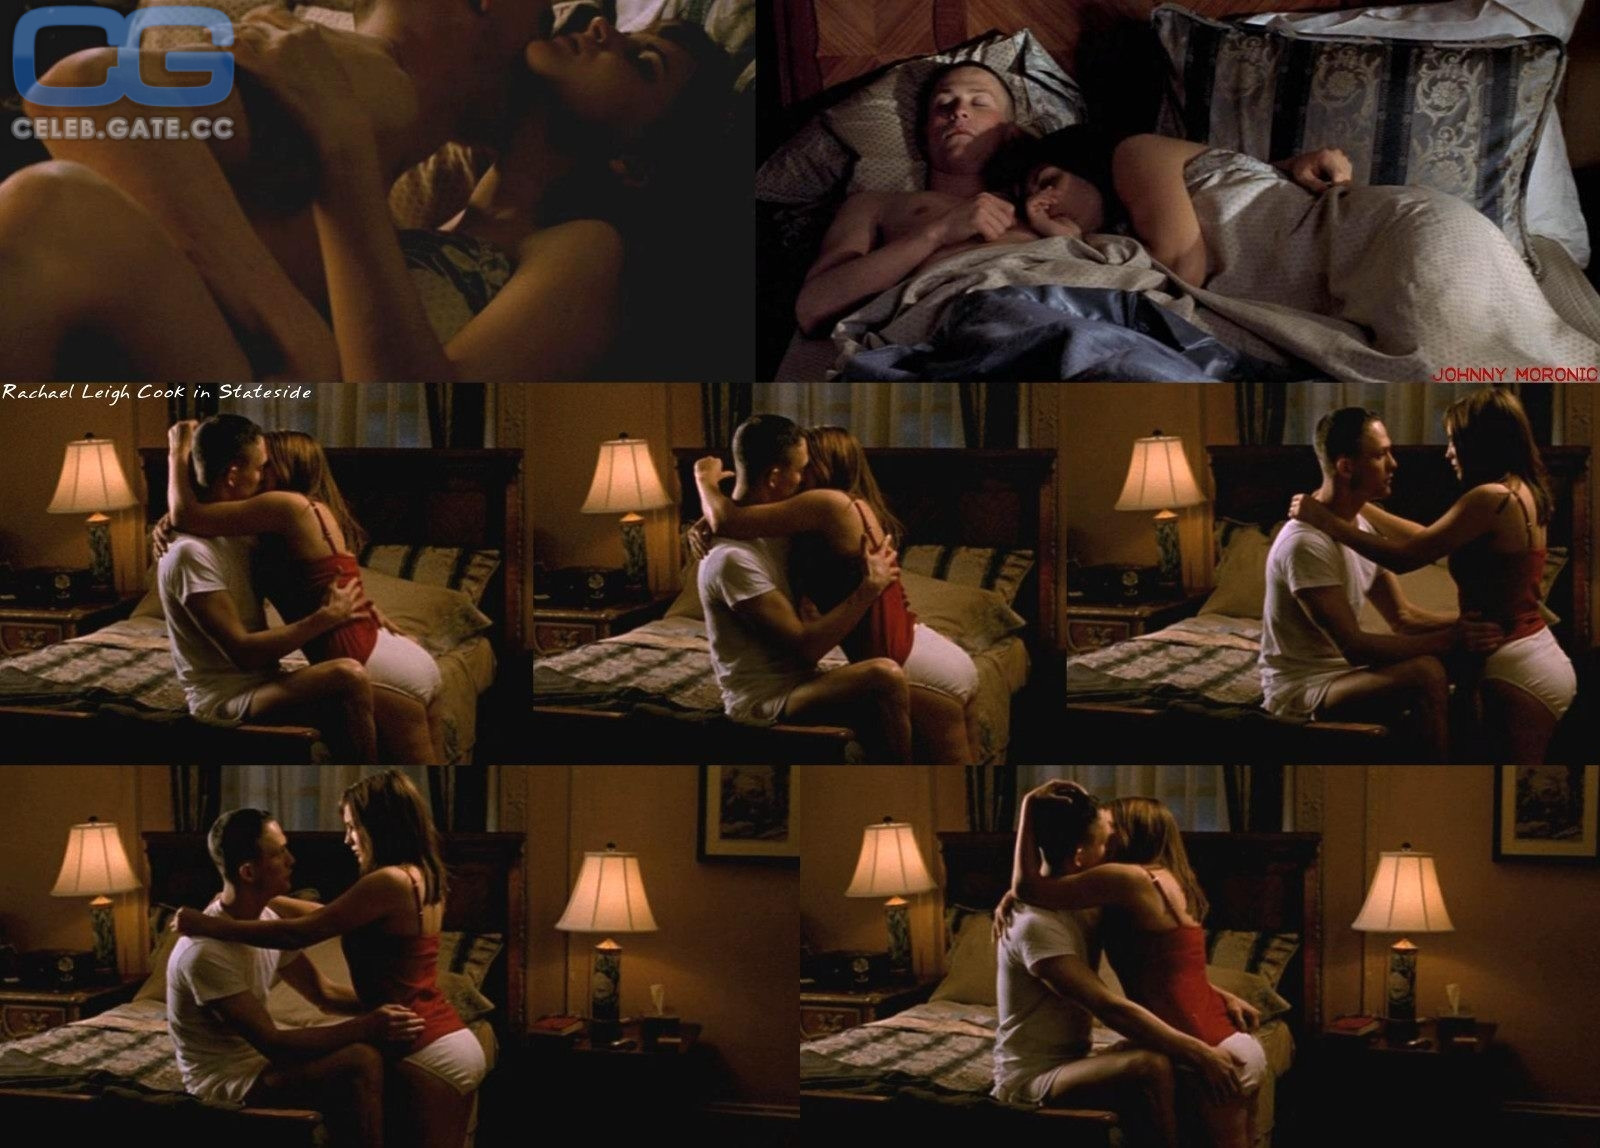 Rachael leigh cook nude pictures gallery, nude and sex scenes